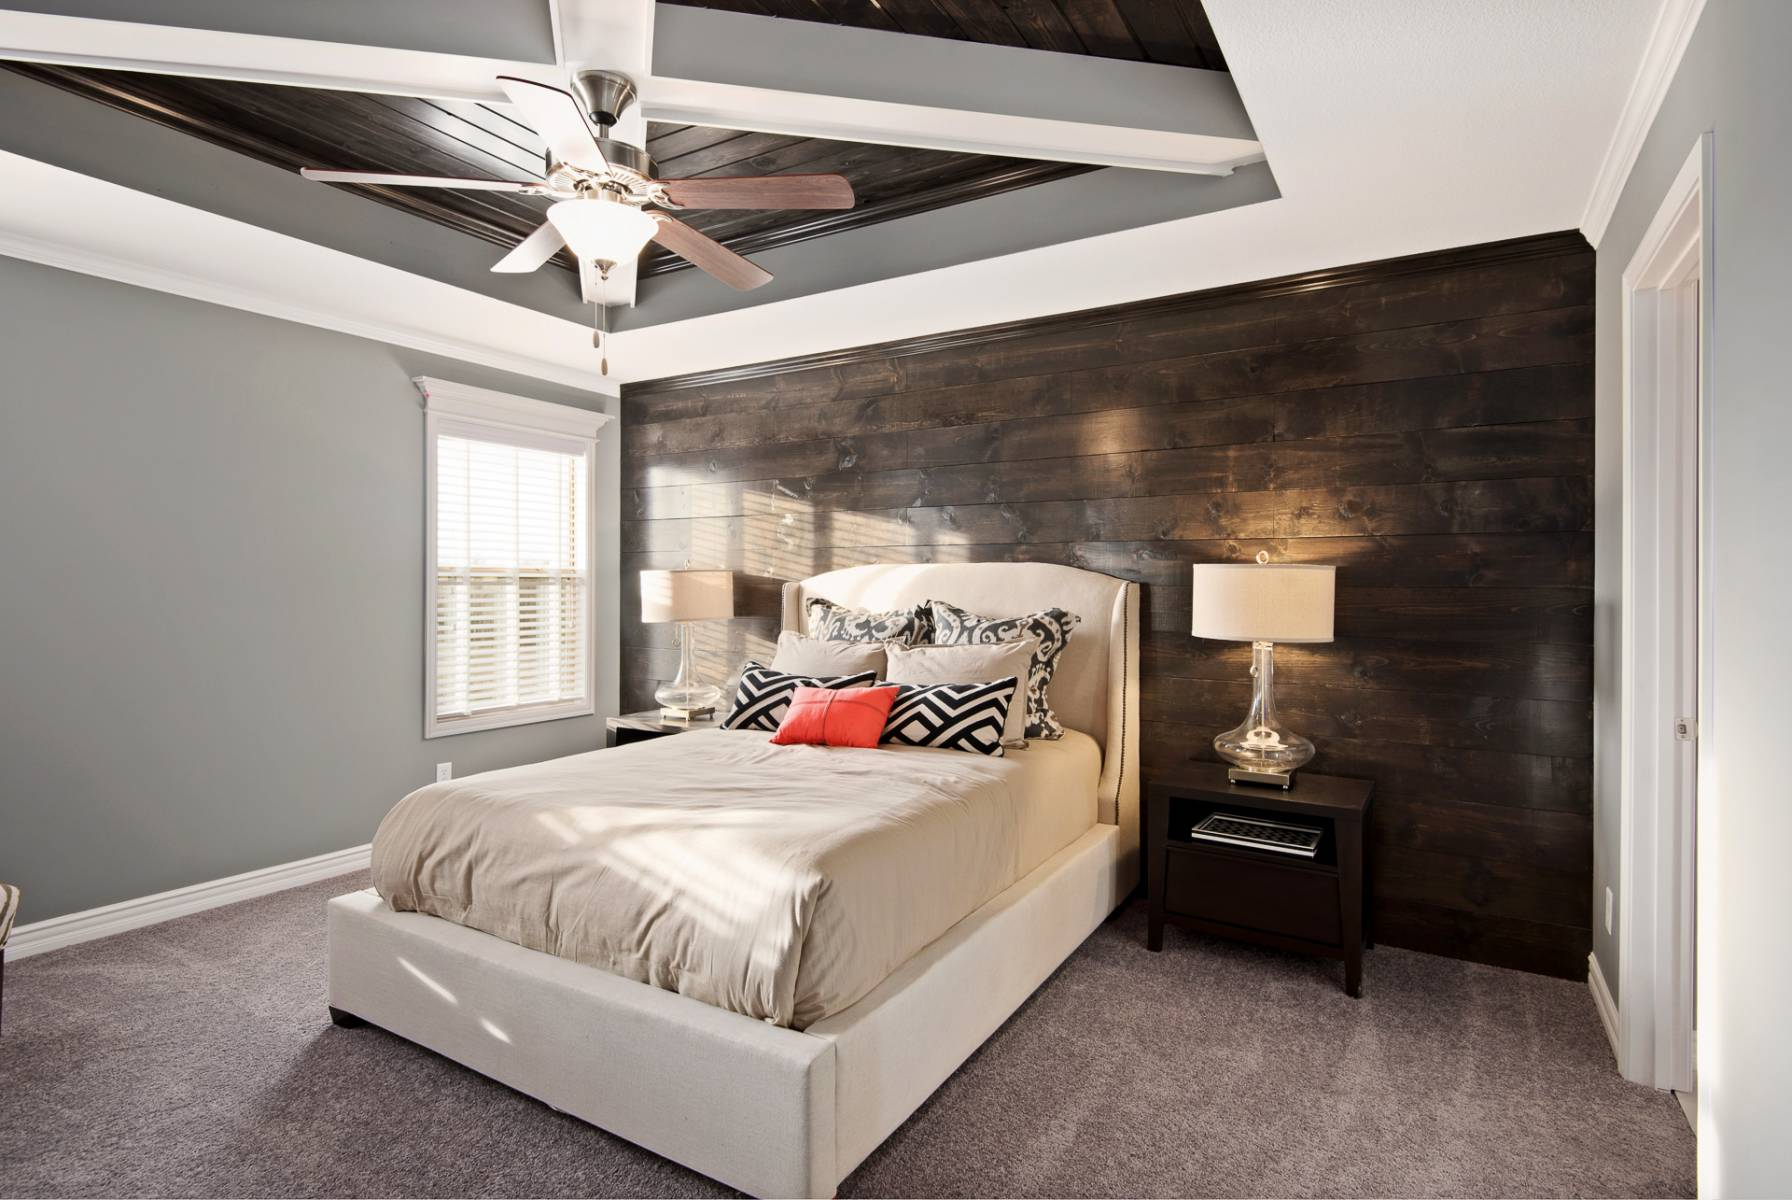 Reclaimed Wood Bedroom Accent Wall - Iowa Remodels